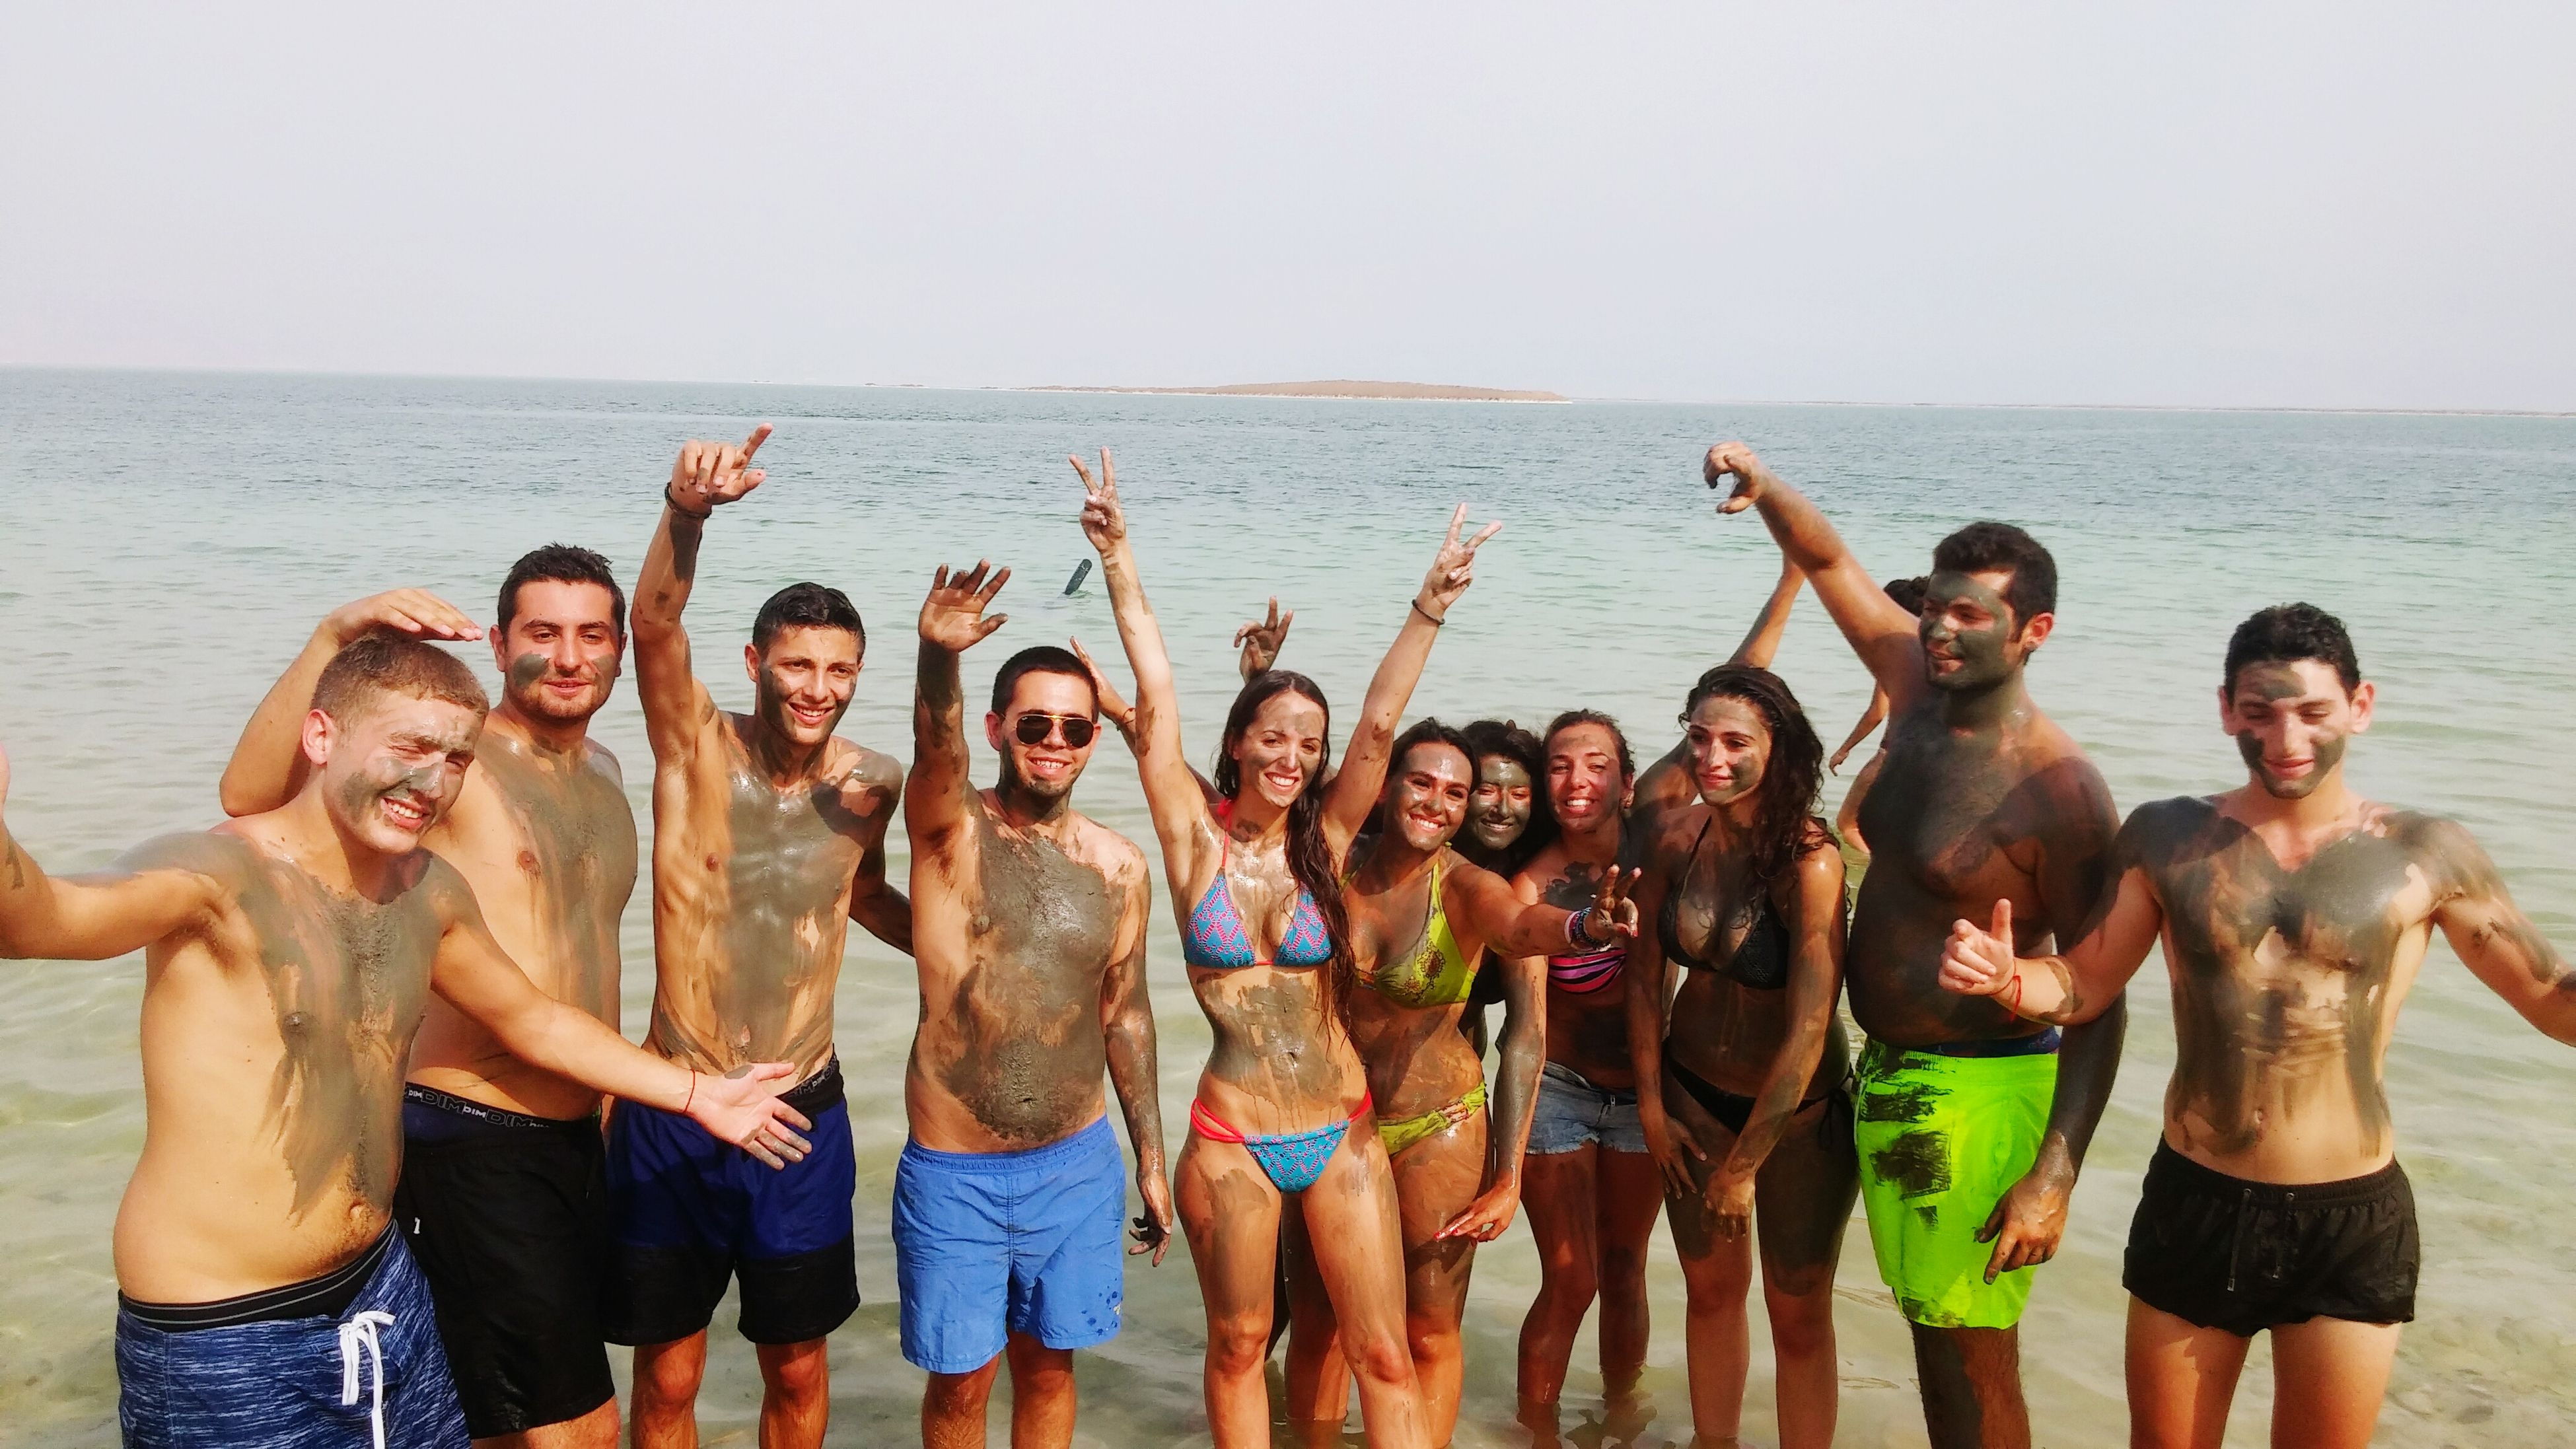 togetherness, lifestyles, leisure activity, men, sea, bonding, person, water, friendship, standing, clear sky, love, beach, enjoyment, copy space, large group of people, vacations, fun, horizon over water